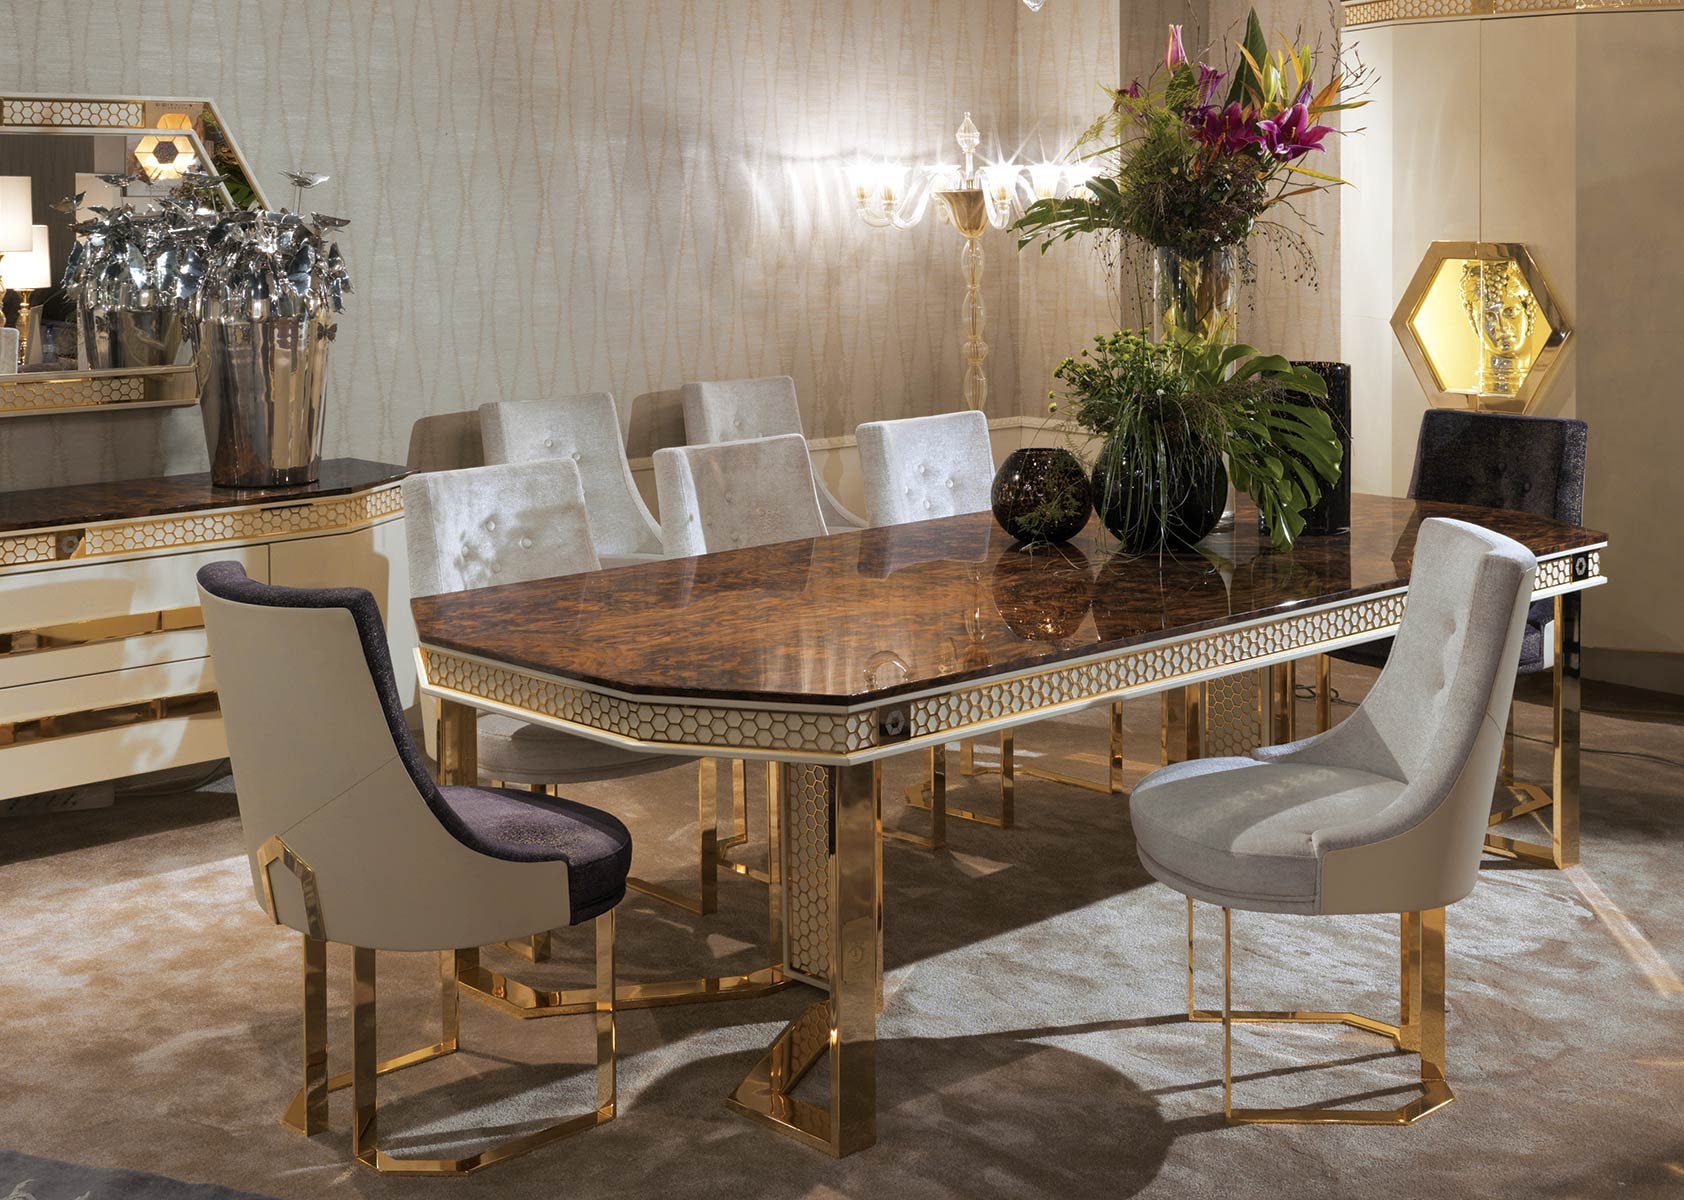 CONQUISTADOR<br/>GL/TA/RE/260/1 - Rectangular Dining Table - cm 260x120x75h<br/>GM/001/A - Chair - cm 59x59x93h<br/>GM/001/B - Chair - cm 59x59x93h